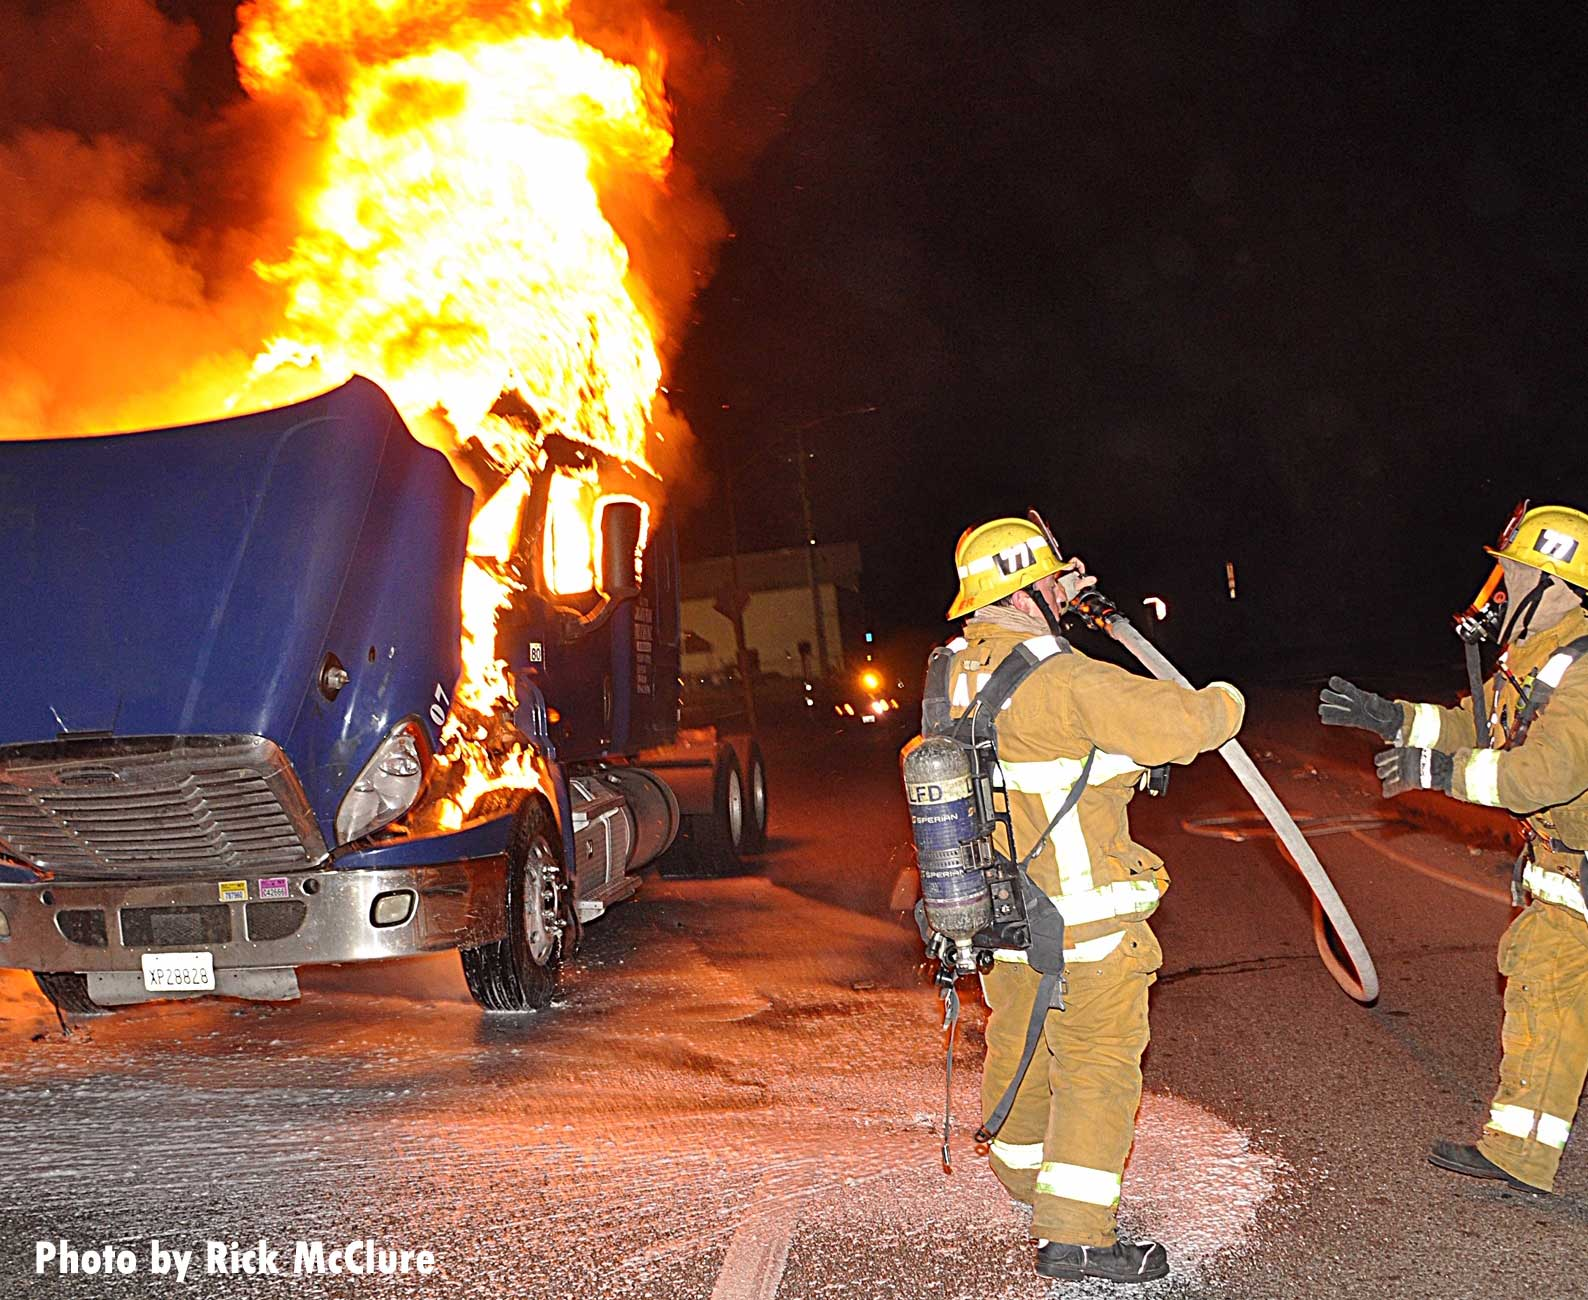 Two firefighters with a hoseline at a big rig fire